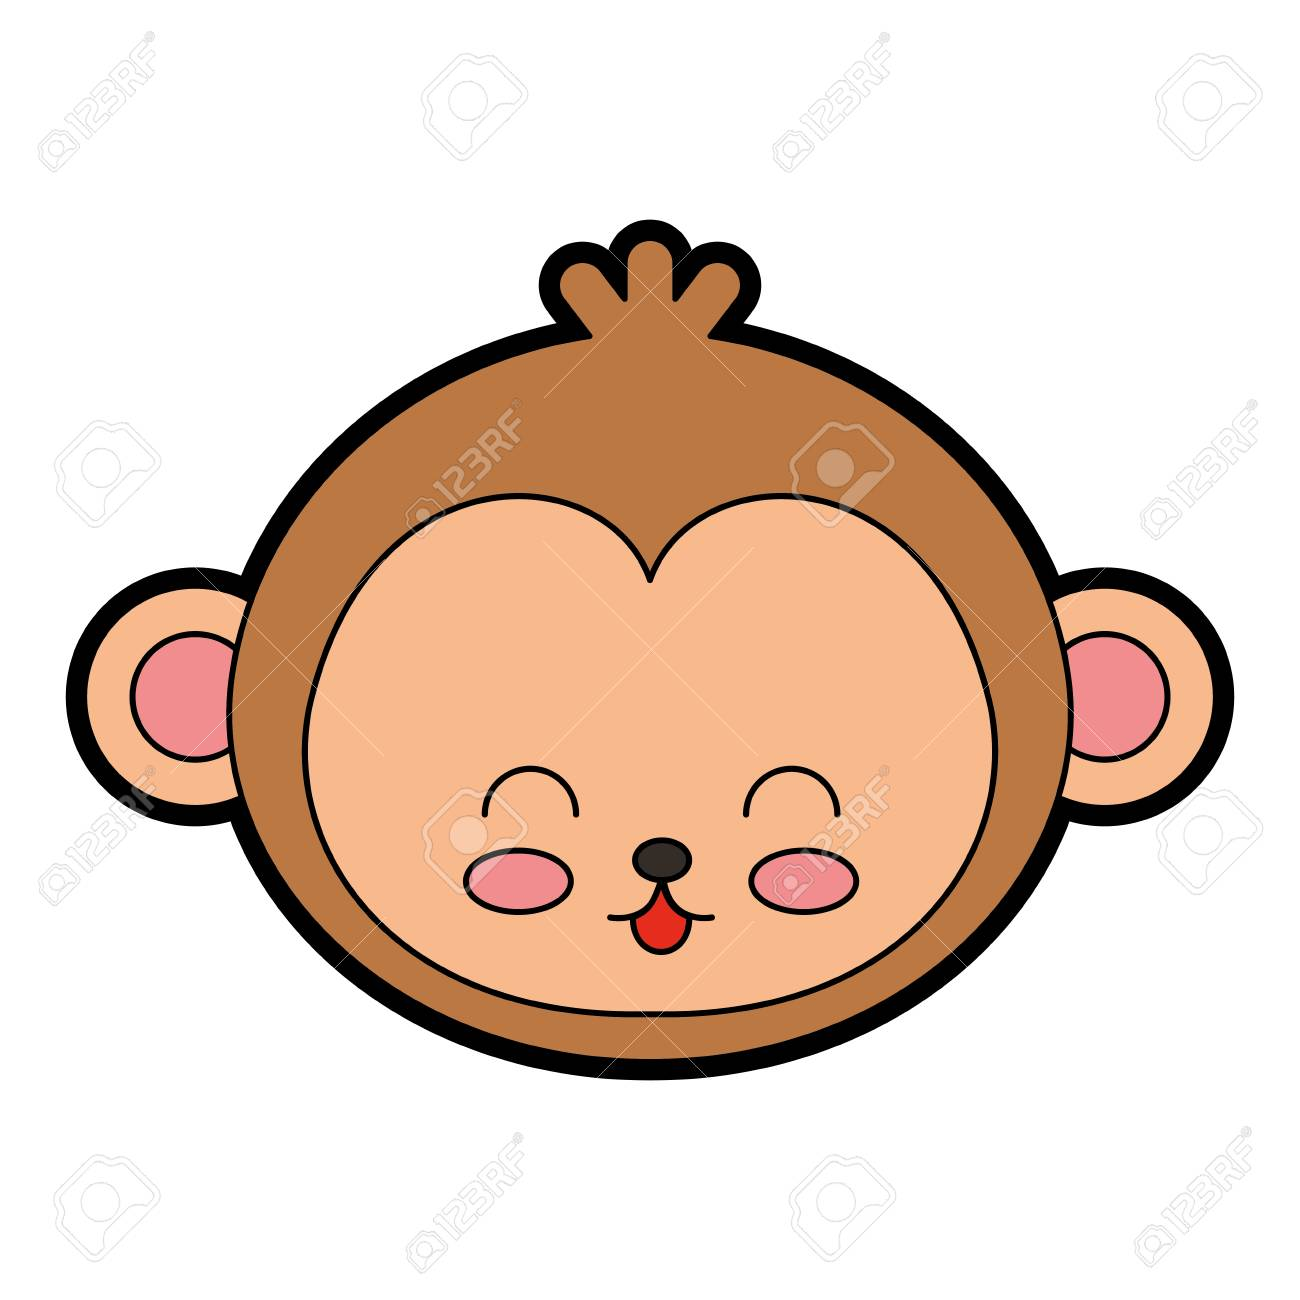 cute color monkey face cartoon graphic deisgn royalty free cliparts rh 123rf com baby monkey face cartoon angry monkey face cartoon